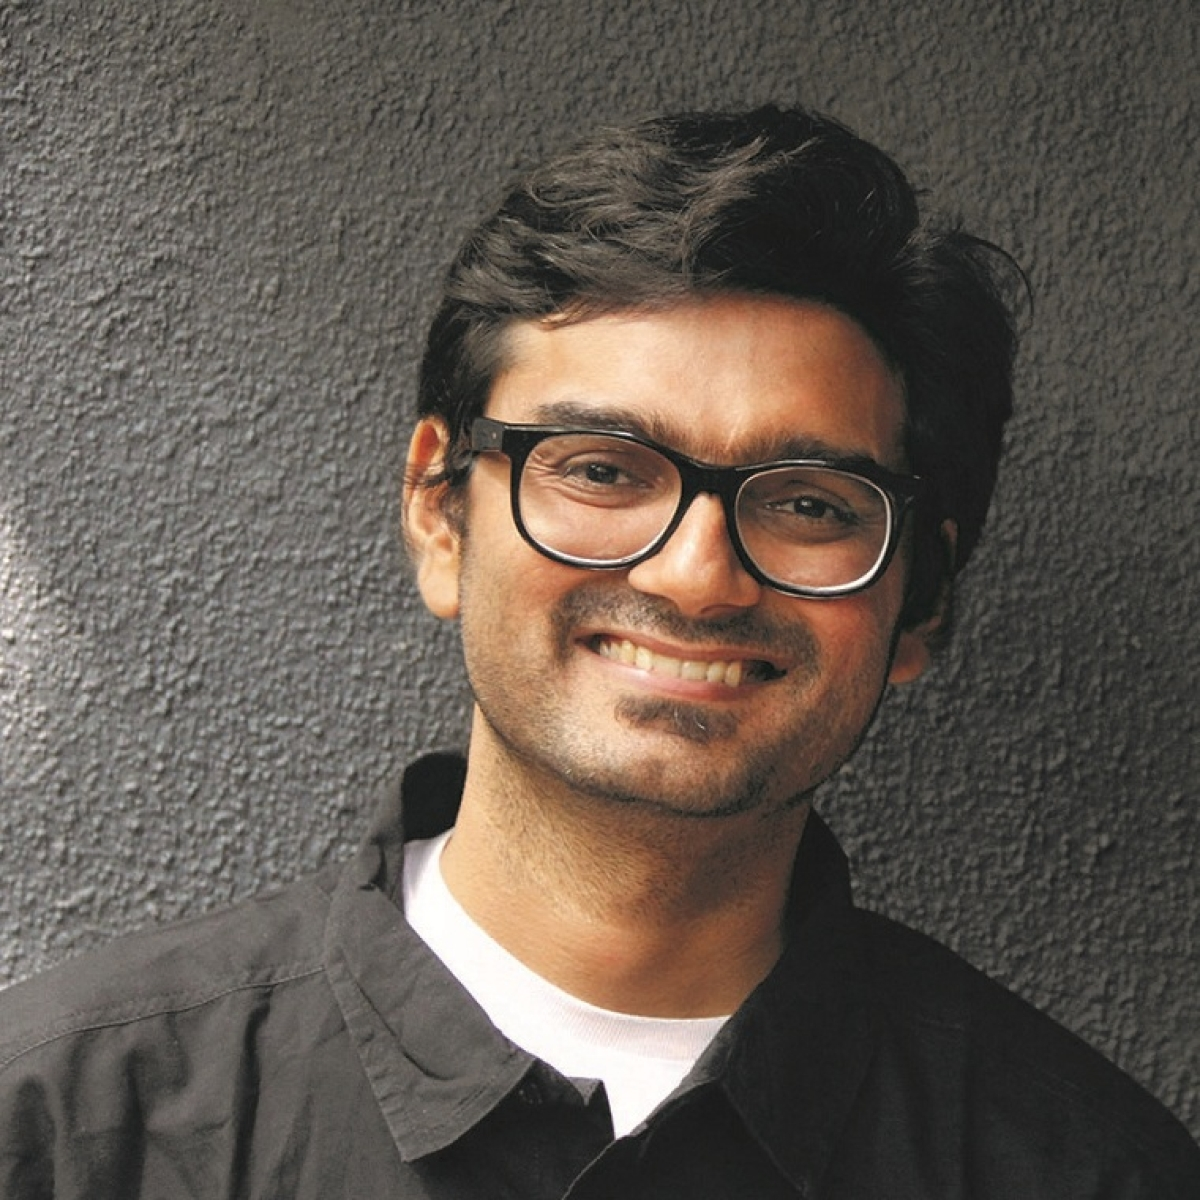 Quasar Thakore Padamsee talks about staging a Zoom edition of Nassim Soleimanpour's absurdist play, White Rabbit Red Rabbit